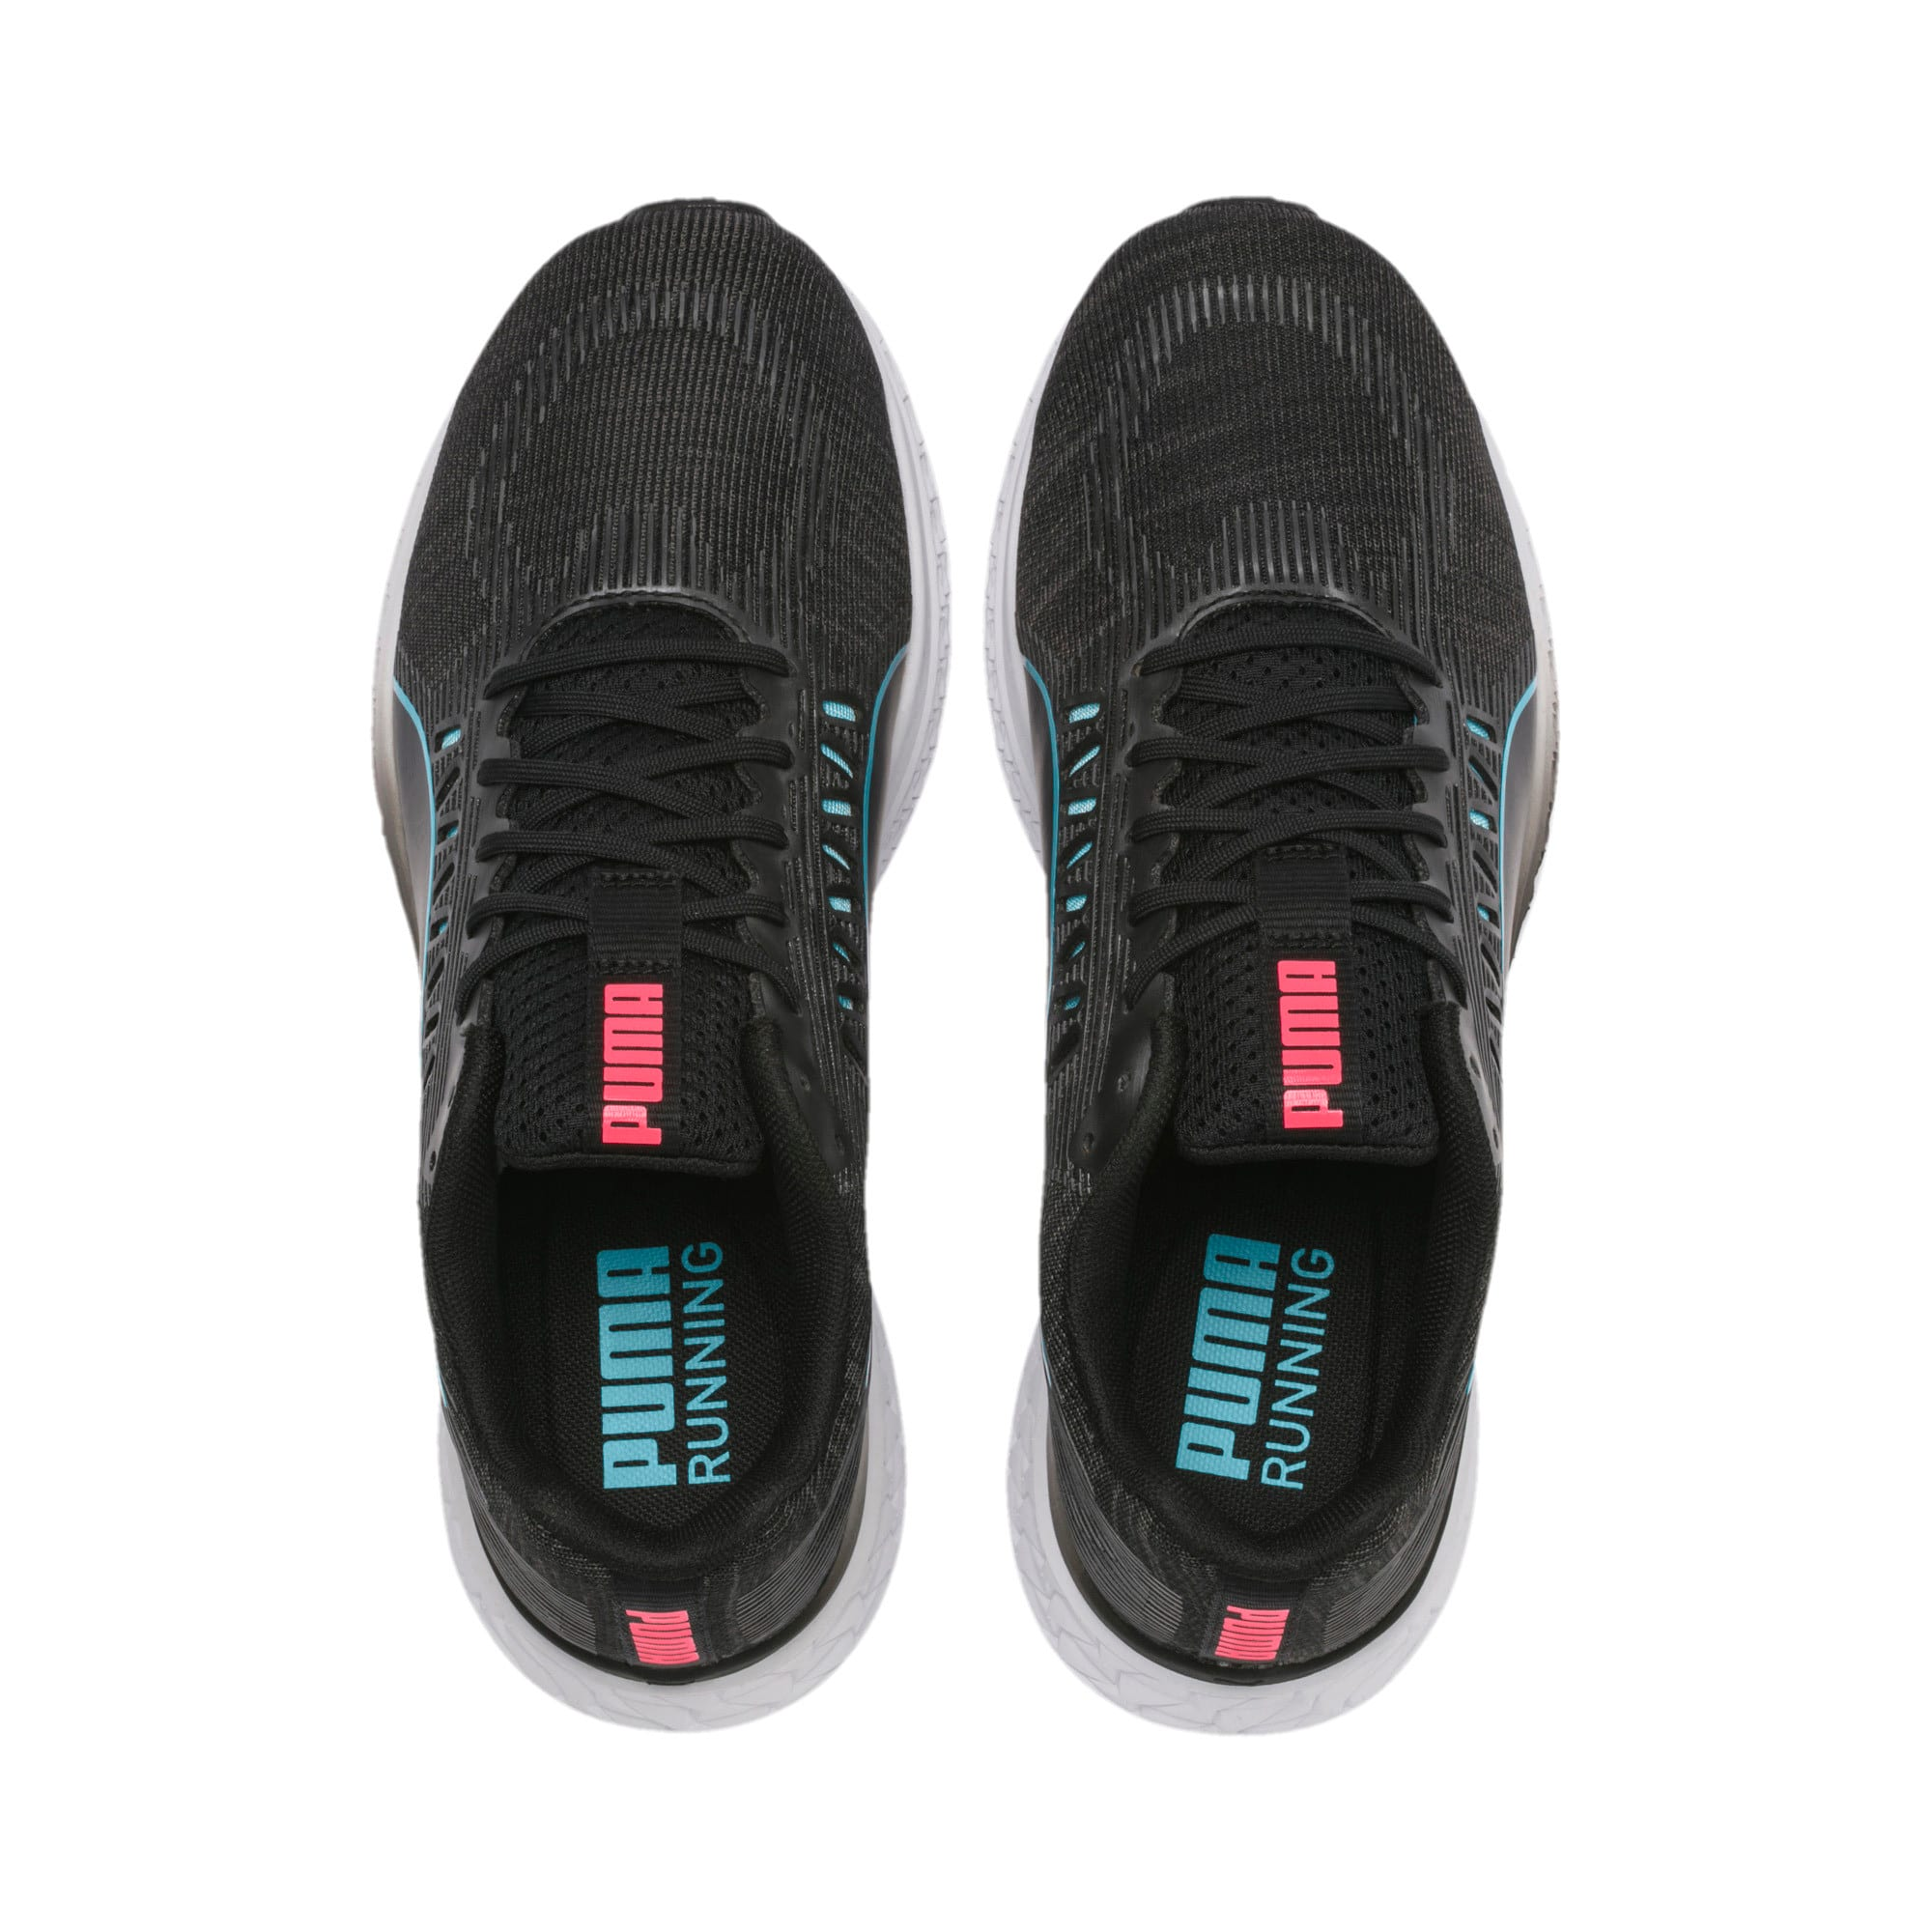 Thumbnail 8 of SPEED Sutamina Women's Running Shoes, Black-Milky Blue-Pink Alert, medium